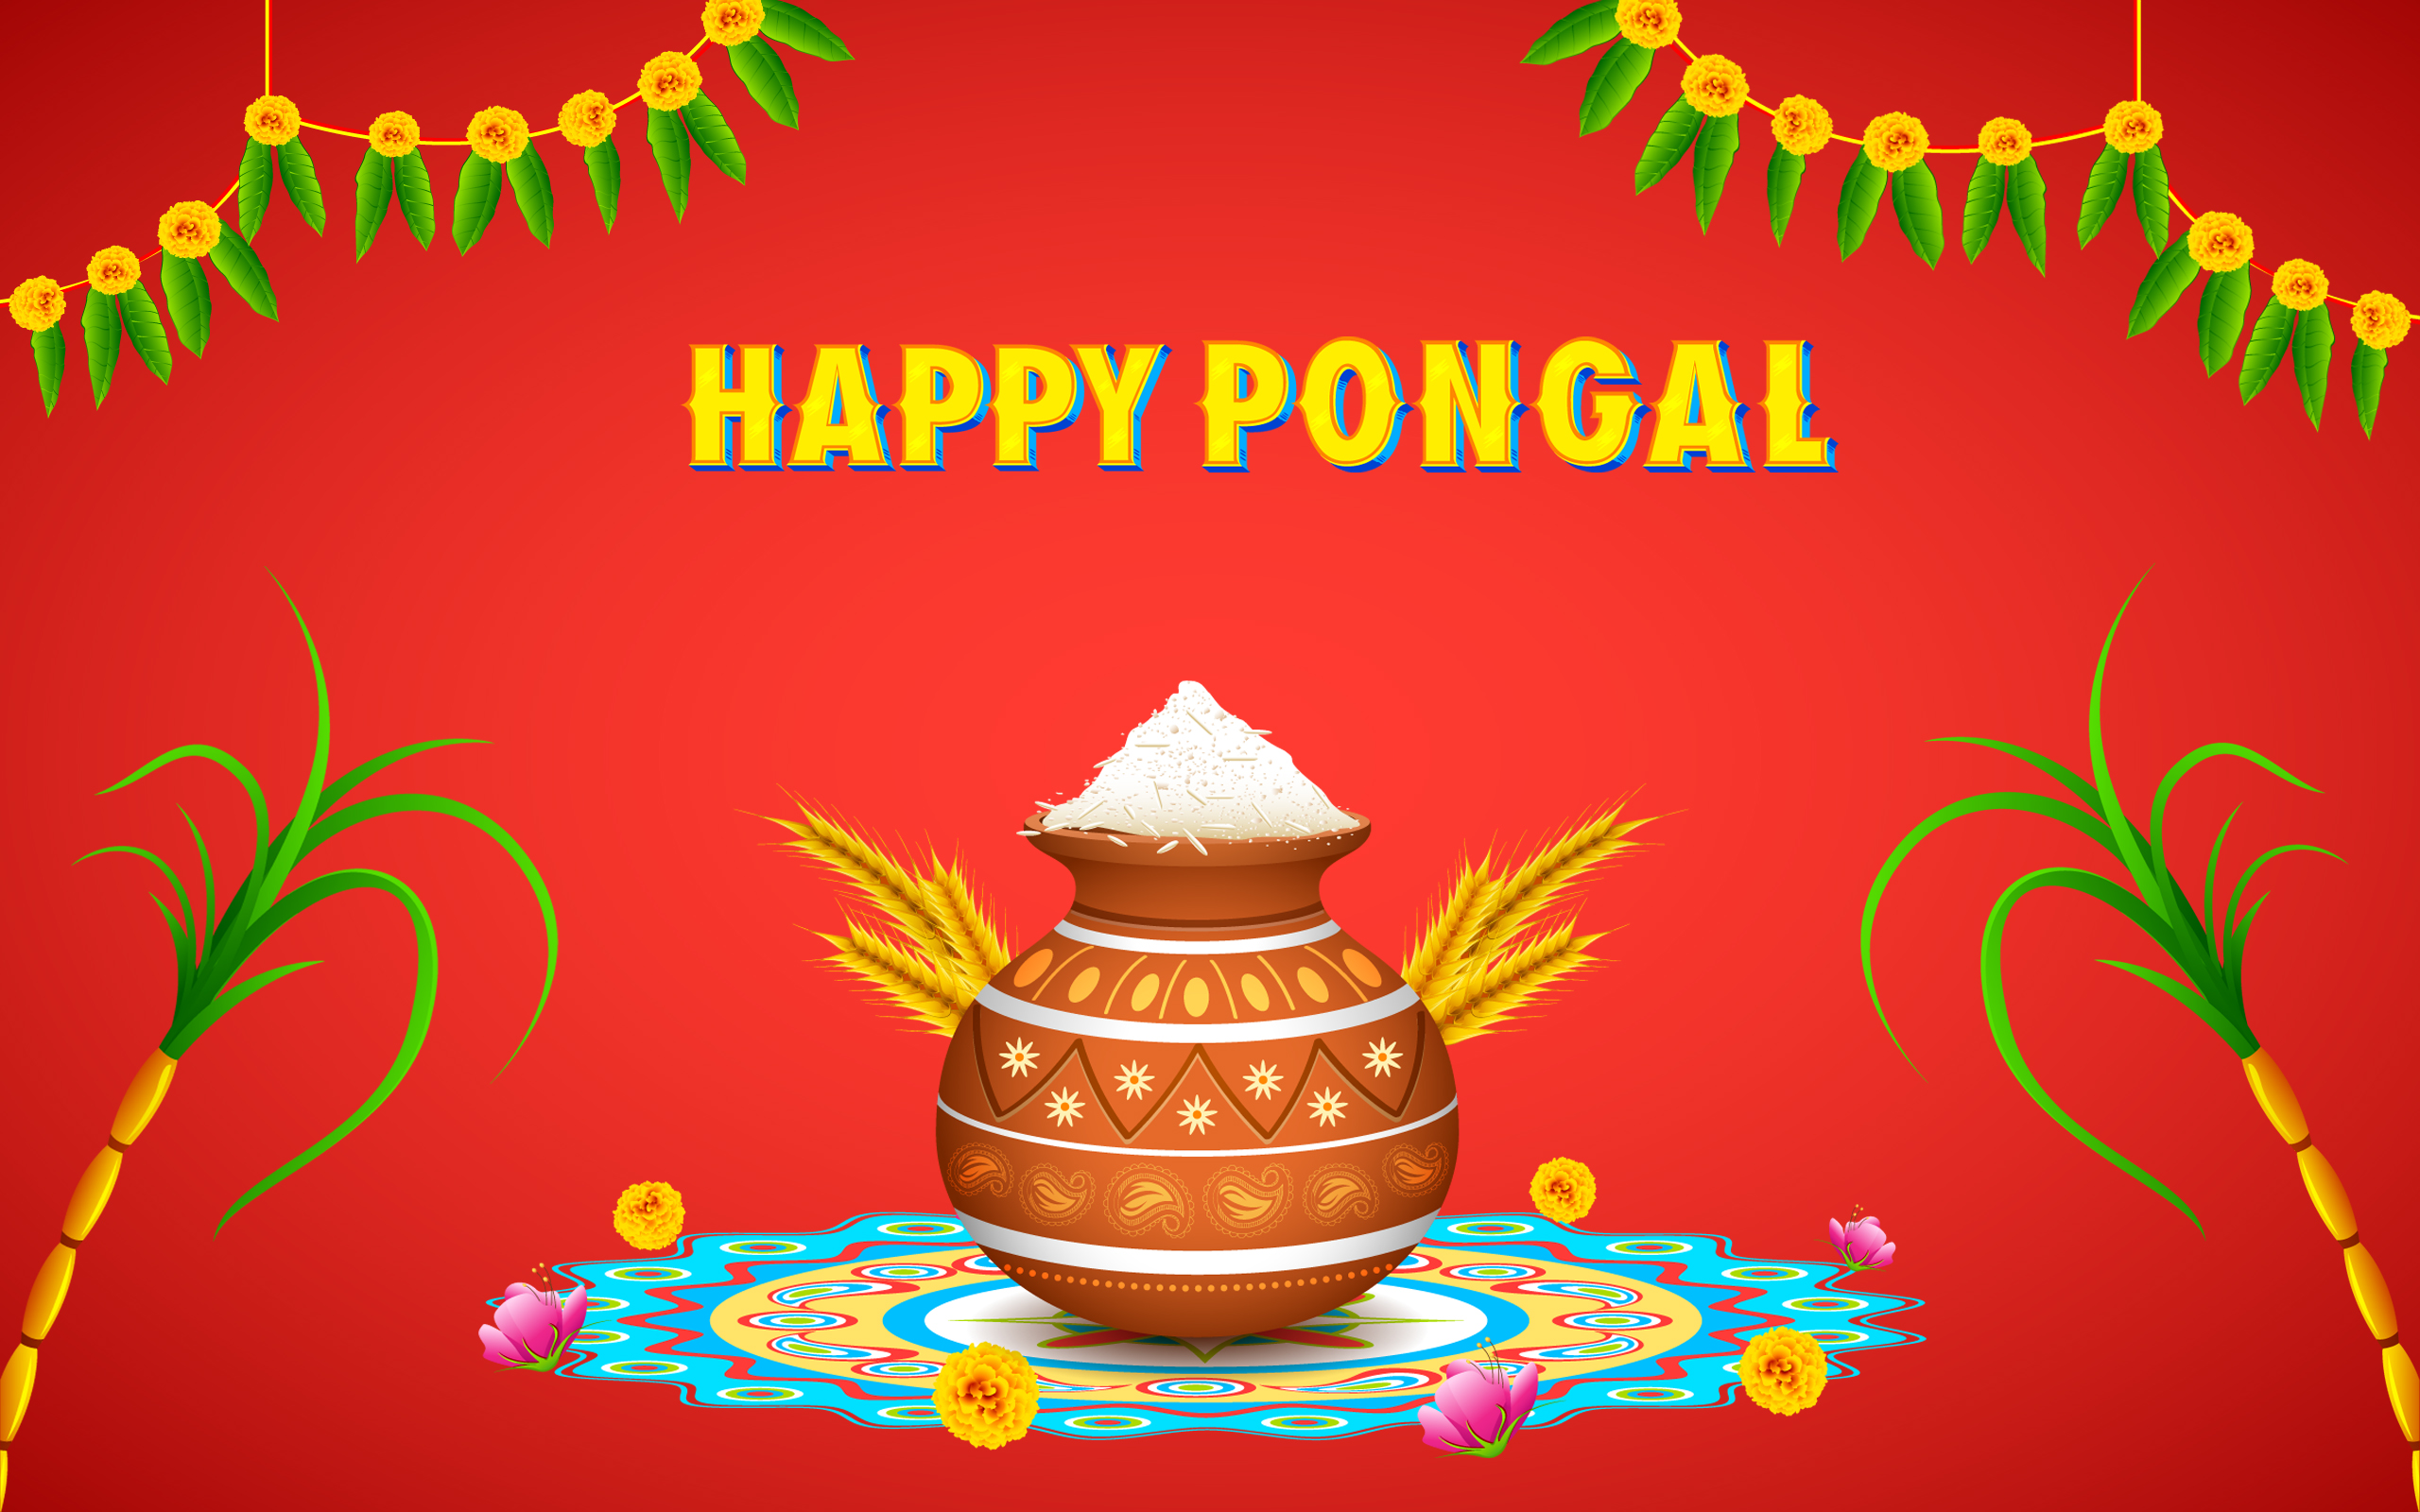 Happy Pongal 2018 Messages & SMS in Tamil, Telugu, Malayalam, English & Hindi fonts